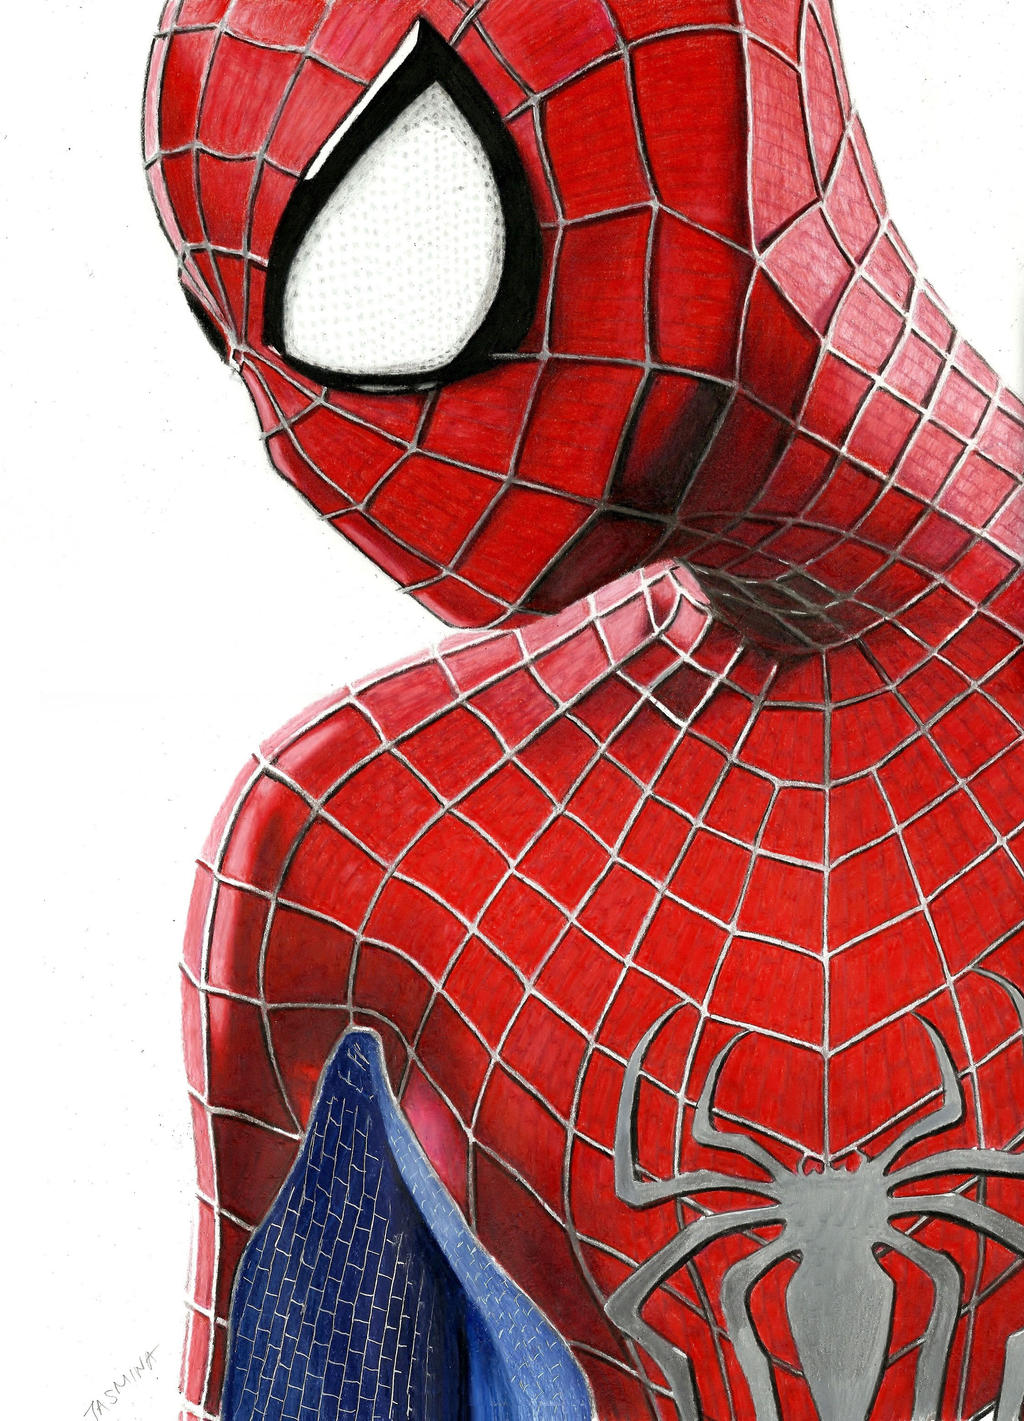 The Amazing Spider-Man 2 Colored Pencil Drawing By JasminaSusak On DeviantArt